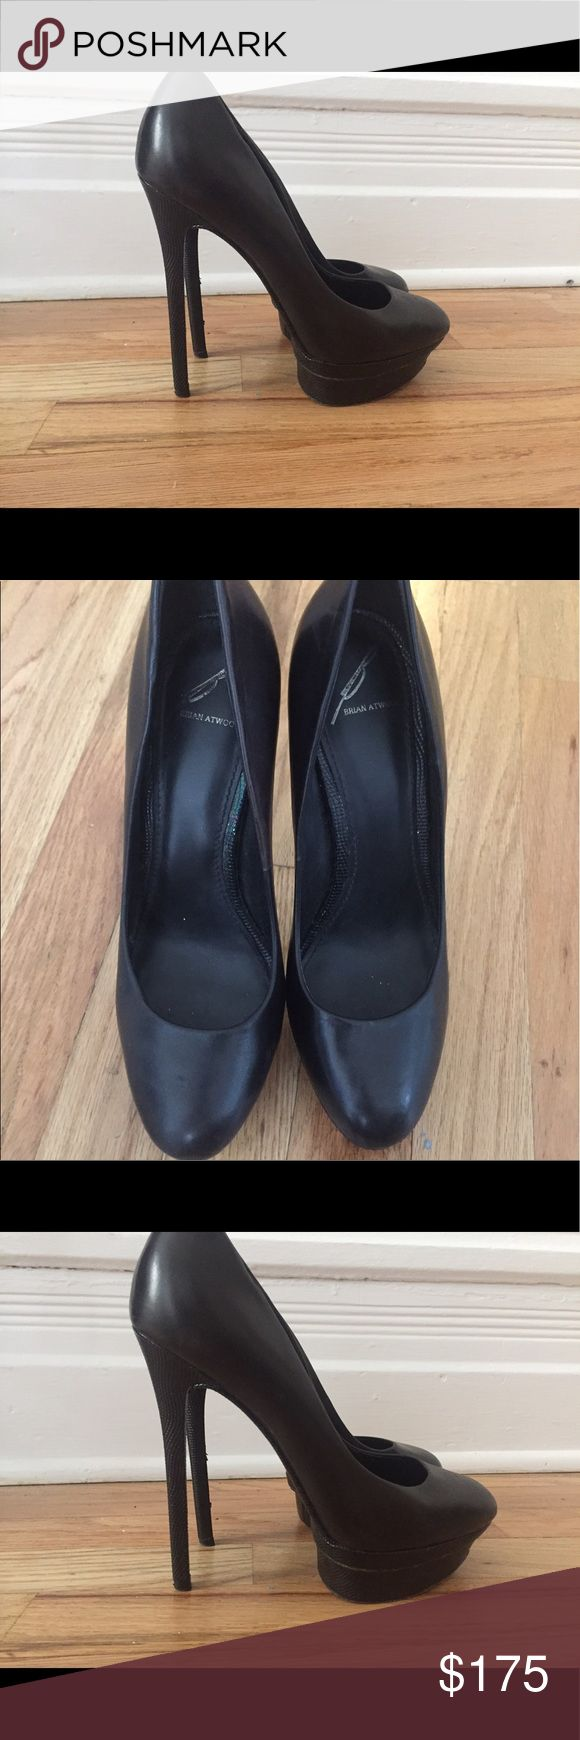 Brian Atwood shoes Brian Atwood shoes in size 7. In perfect condition. Brian Atwood Shoes Heels